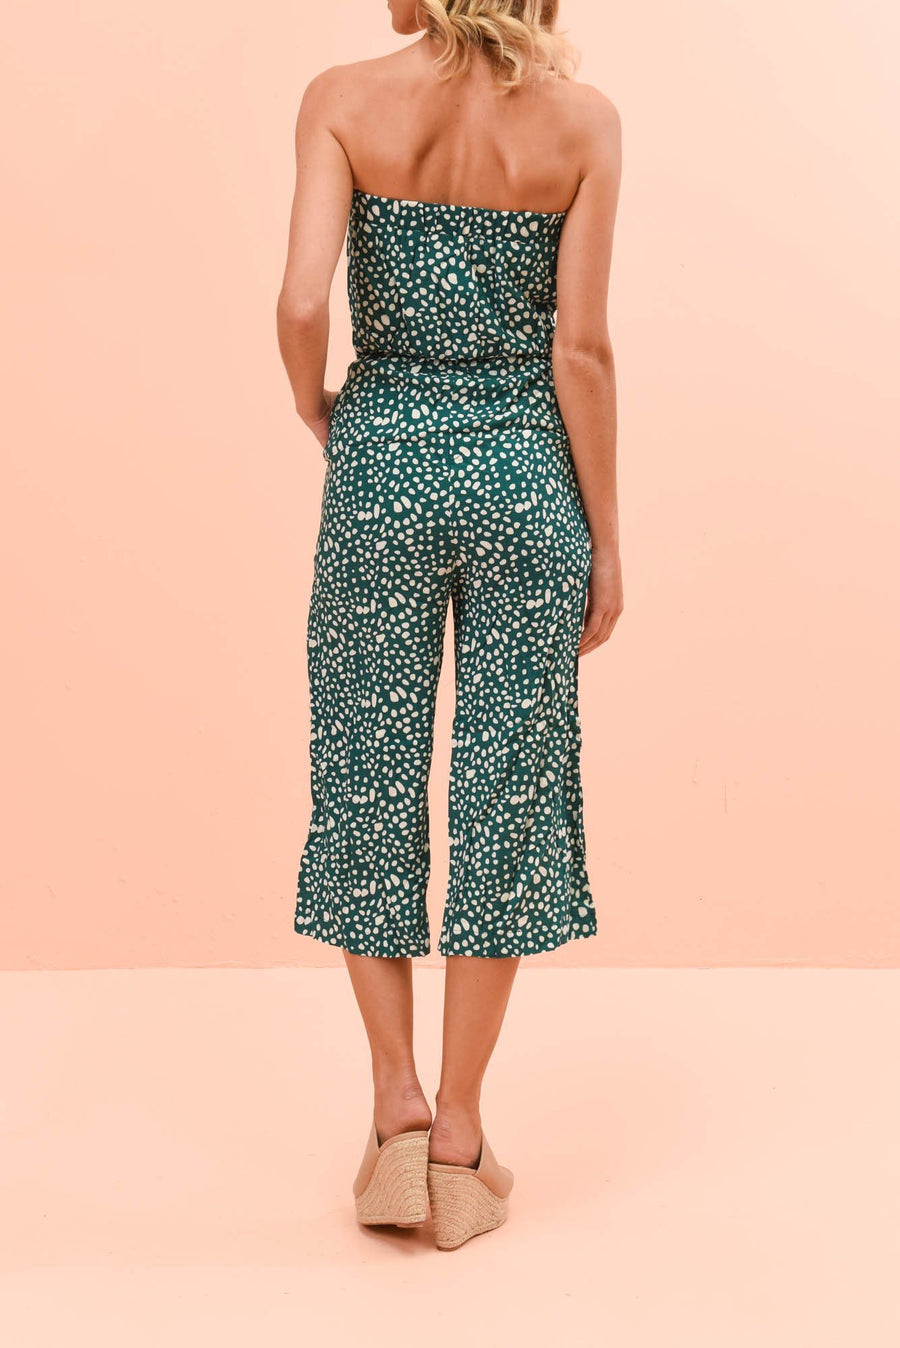 Envy Jumpsuit Jumpsuits The Lust Label